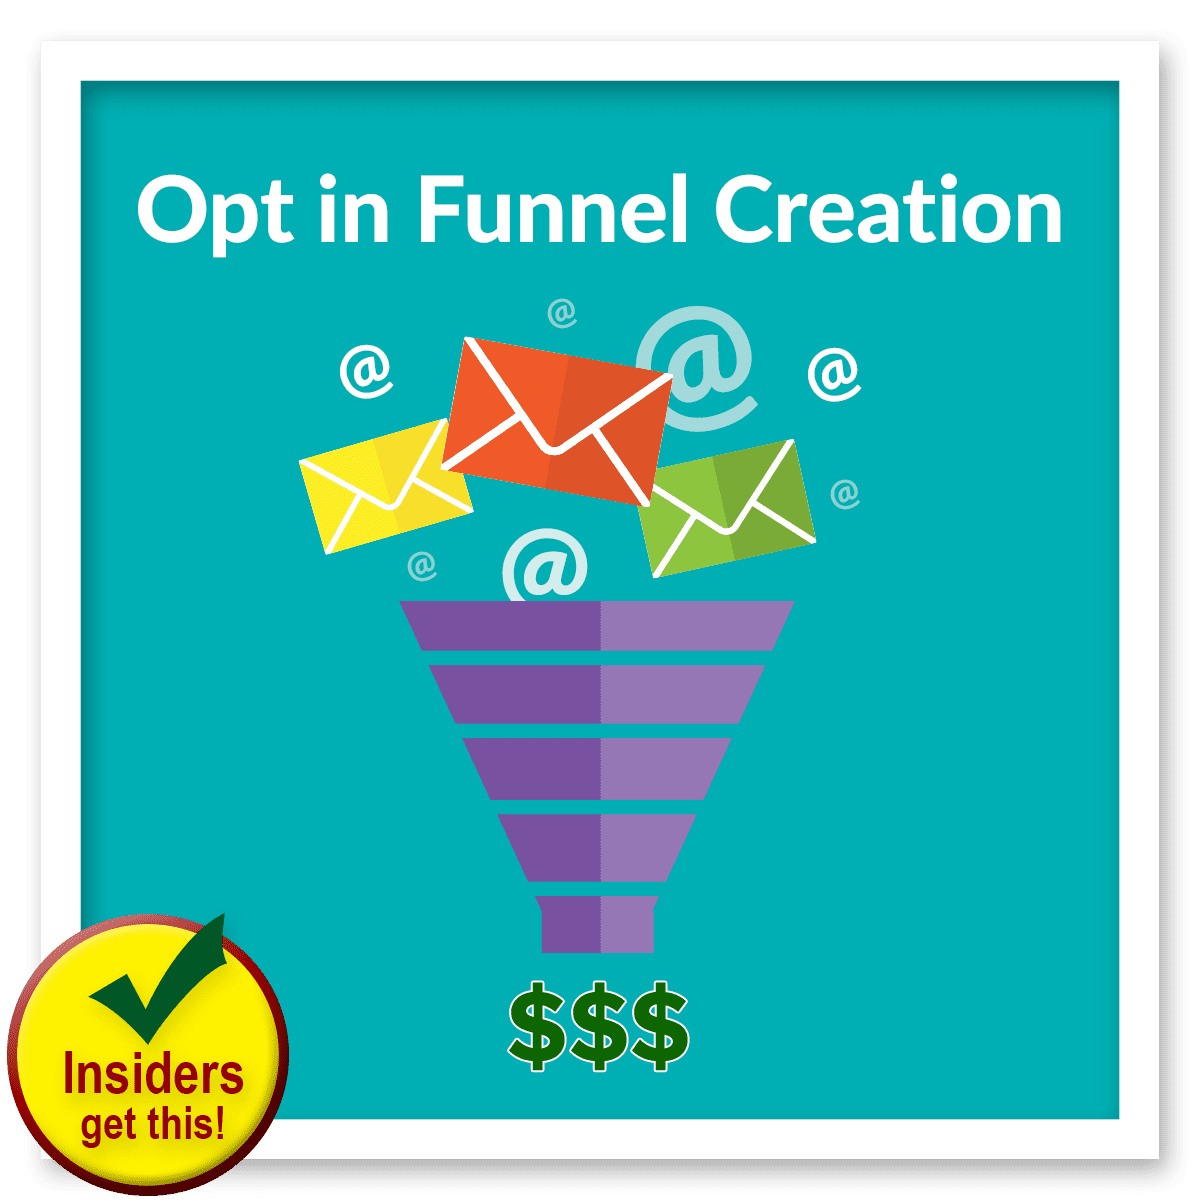 optinfunnel_squarewithtext-insiders